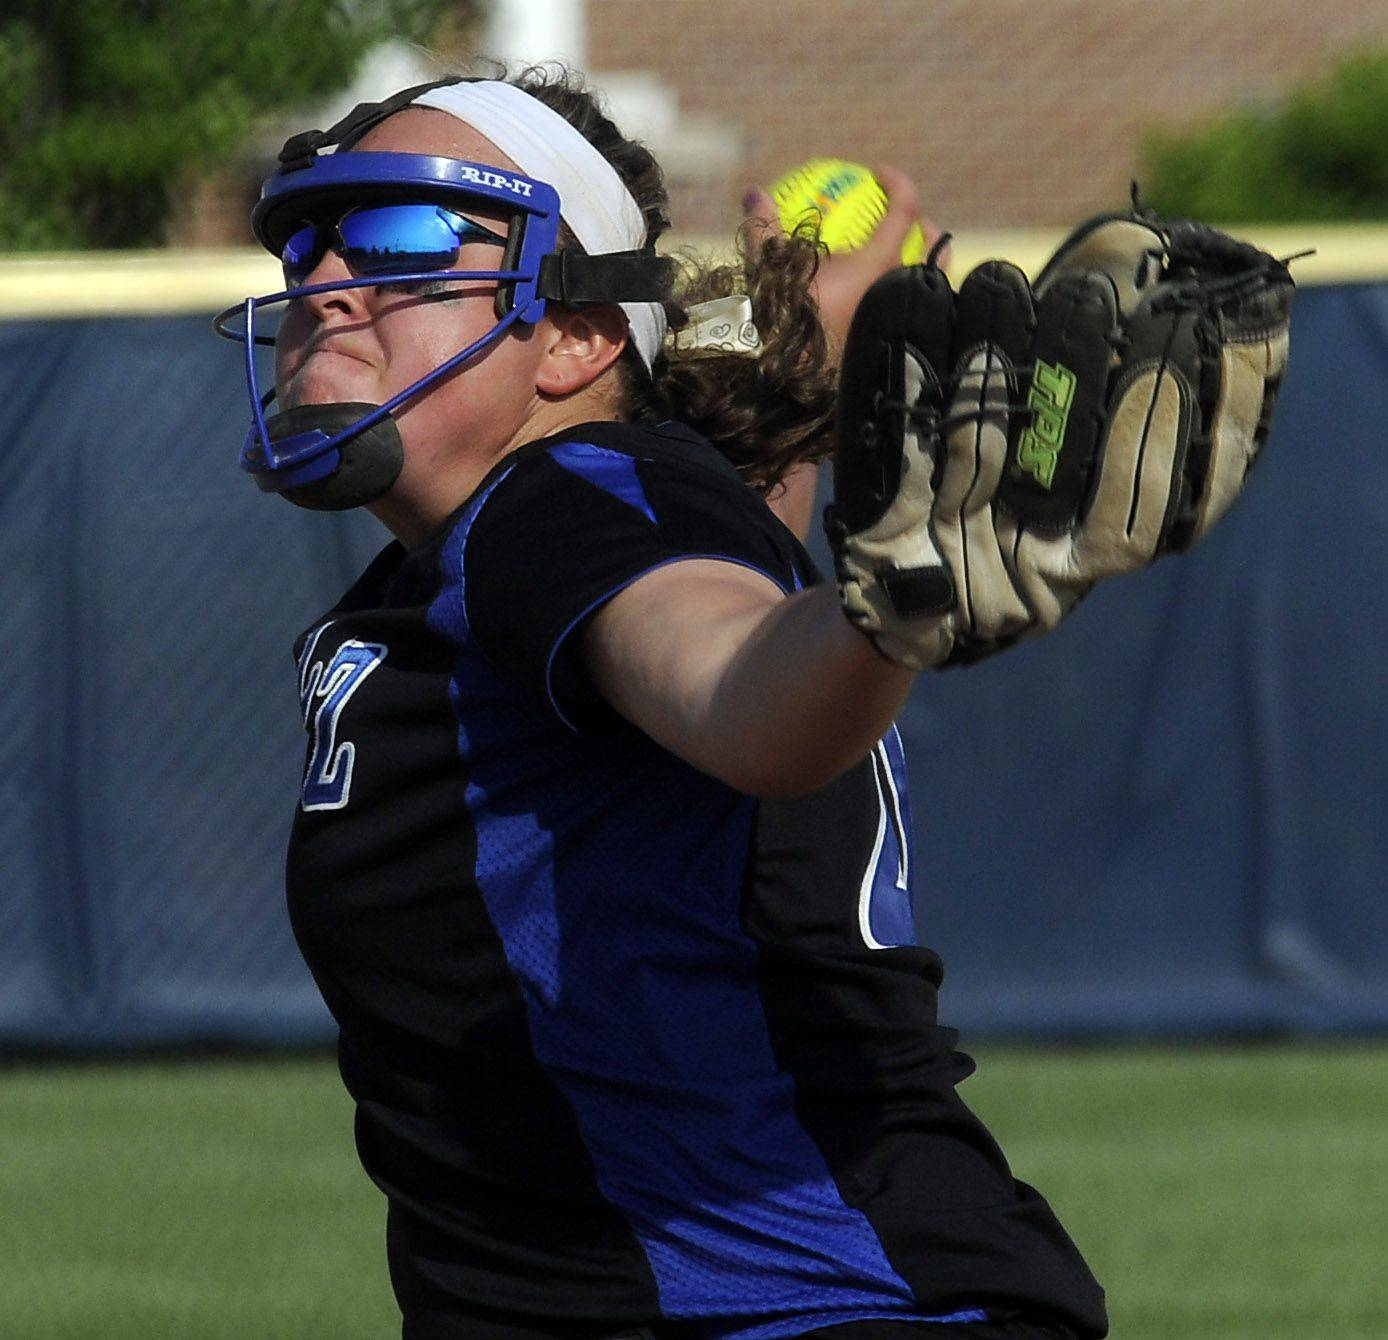 Lake Zurich's pitcher Megan Mattera brings the heat to New Trier in the Class 4A Glenbrook South softball supersectional title game on Monday.